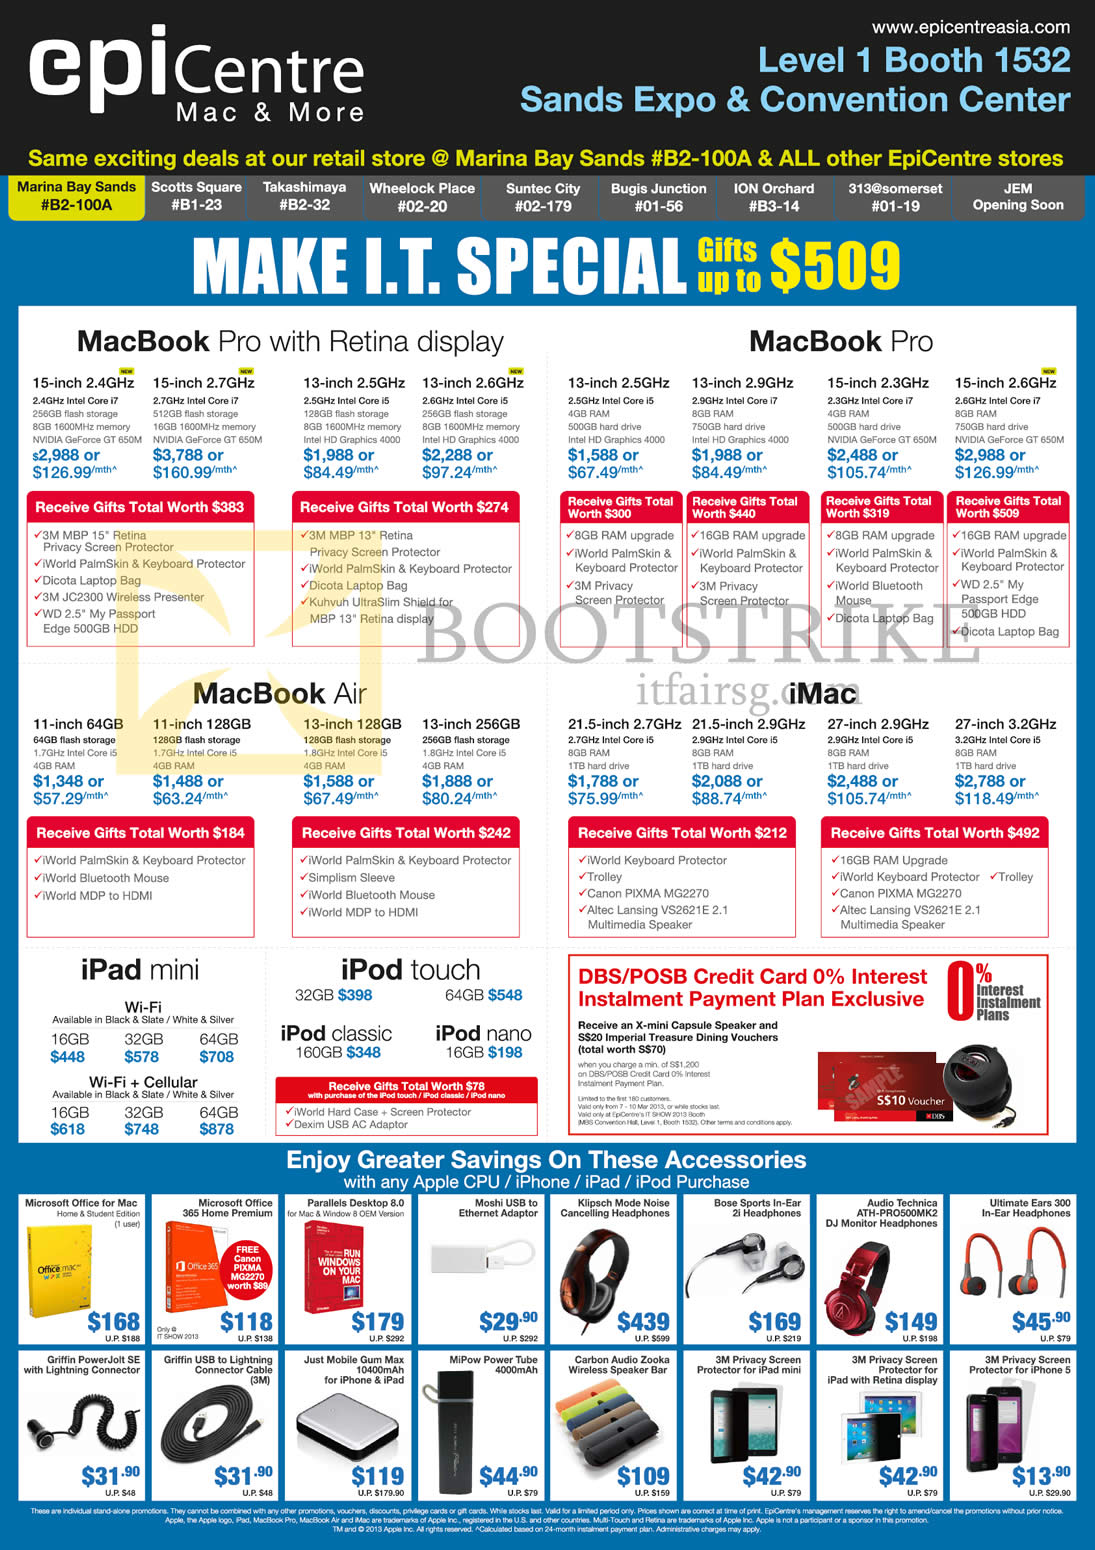 IT SHOW 2013 price list image brochure of EpiCentre Apple MacBook Pro, Air, IMac Desktop PC, IPad Mini, IPod Touch, IPod Classic, Nano, Parallels Desktop, Microsoft Office, 3M Privacy Screen, Ultimate Ears UE